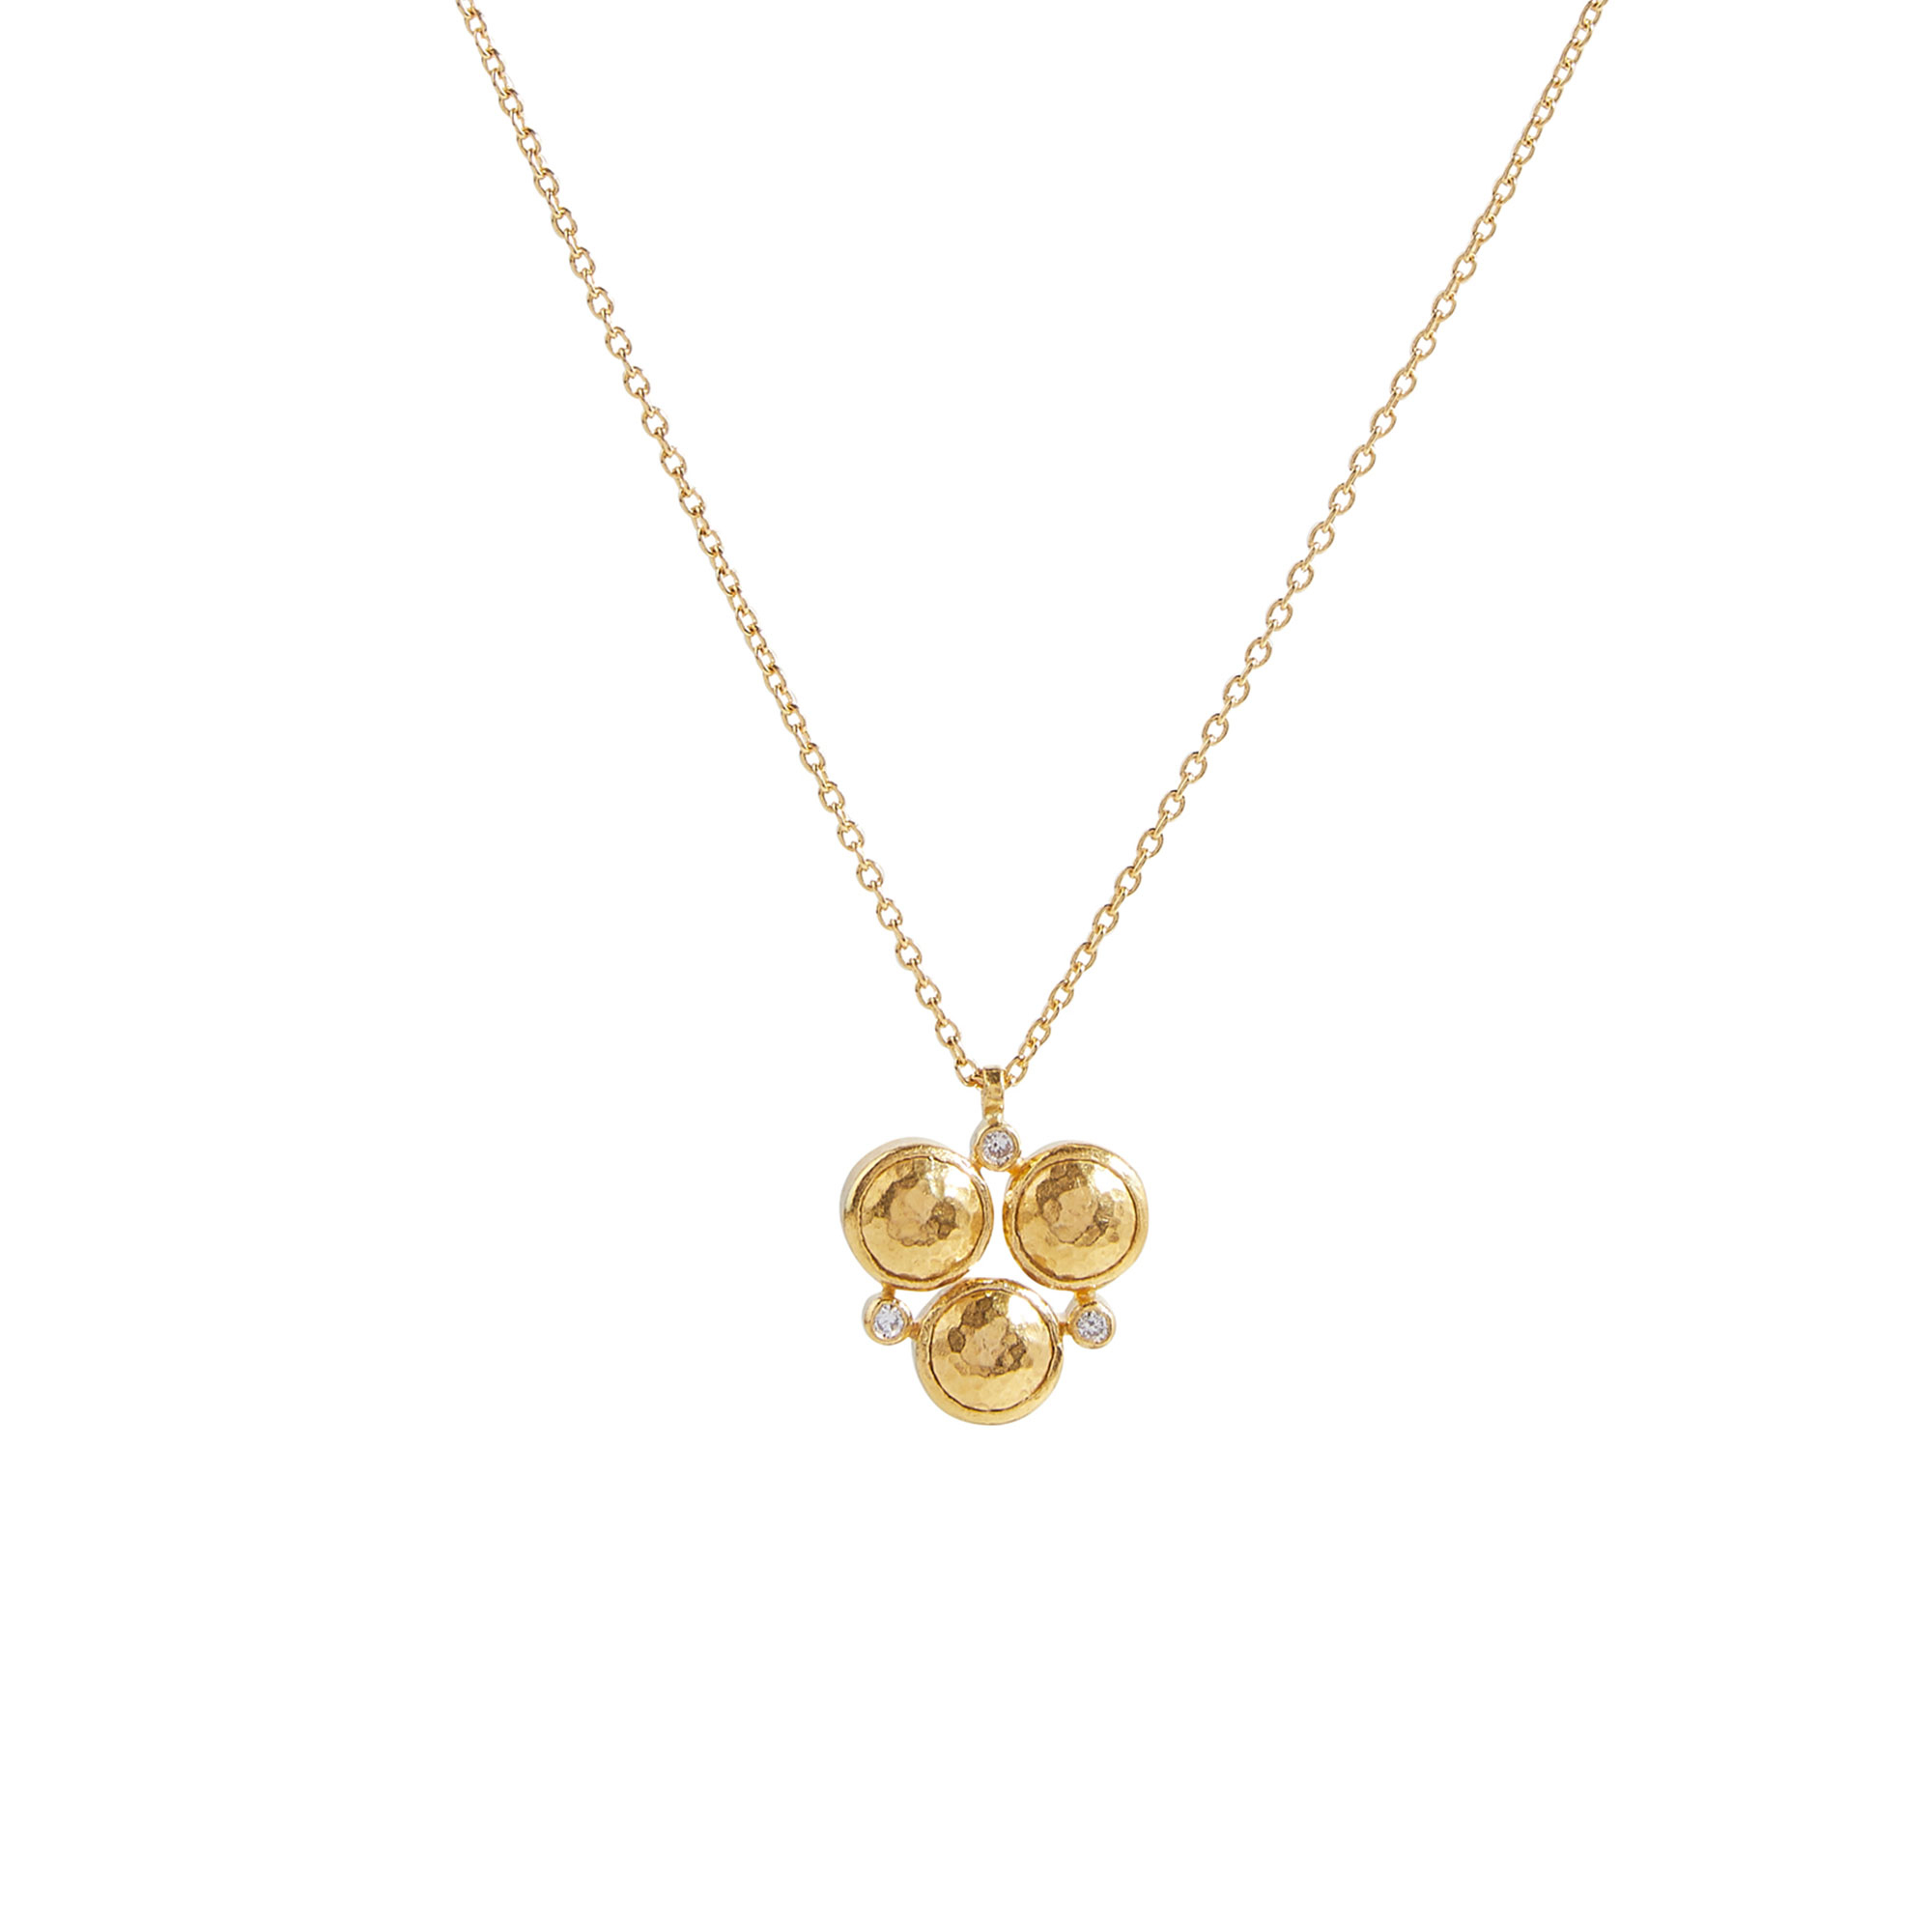 Gurhan 18-22-24K Yellow Gold .054cts White Diamond Gold Necklace with Stones GUN-YG-DI18-4913